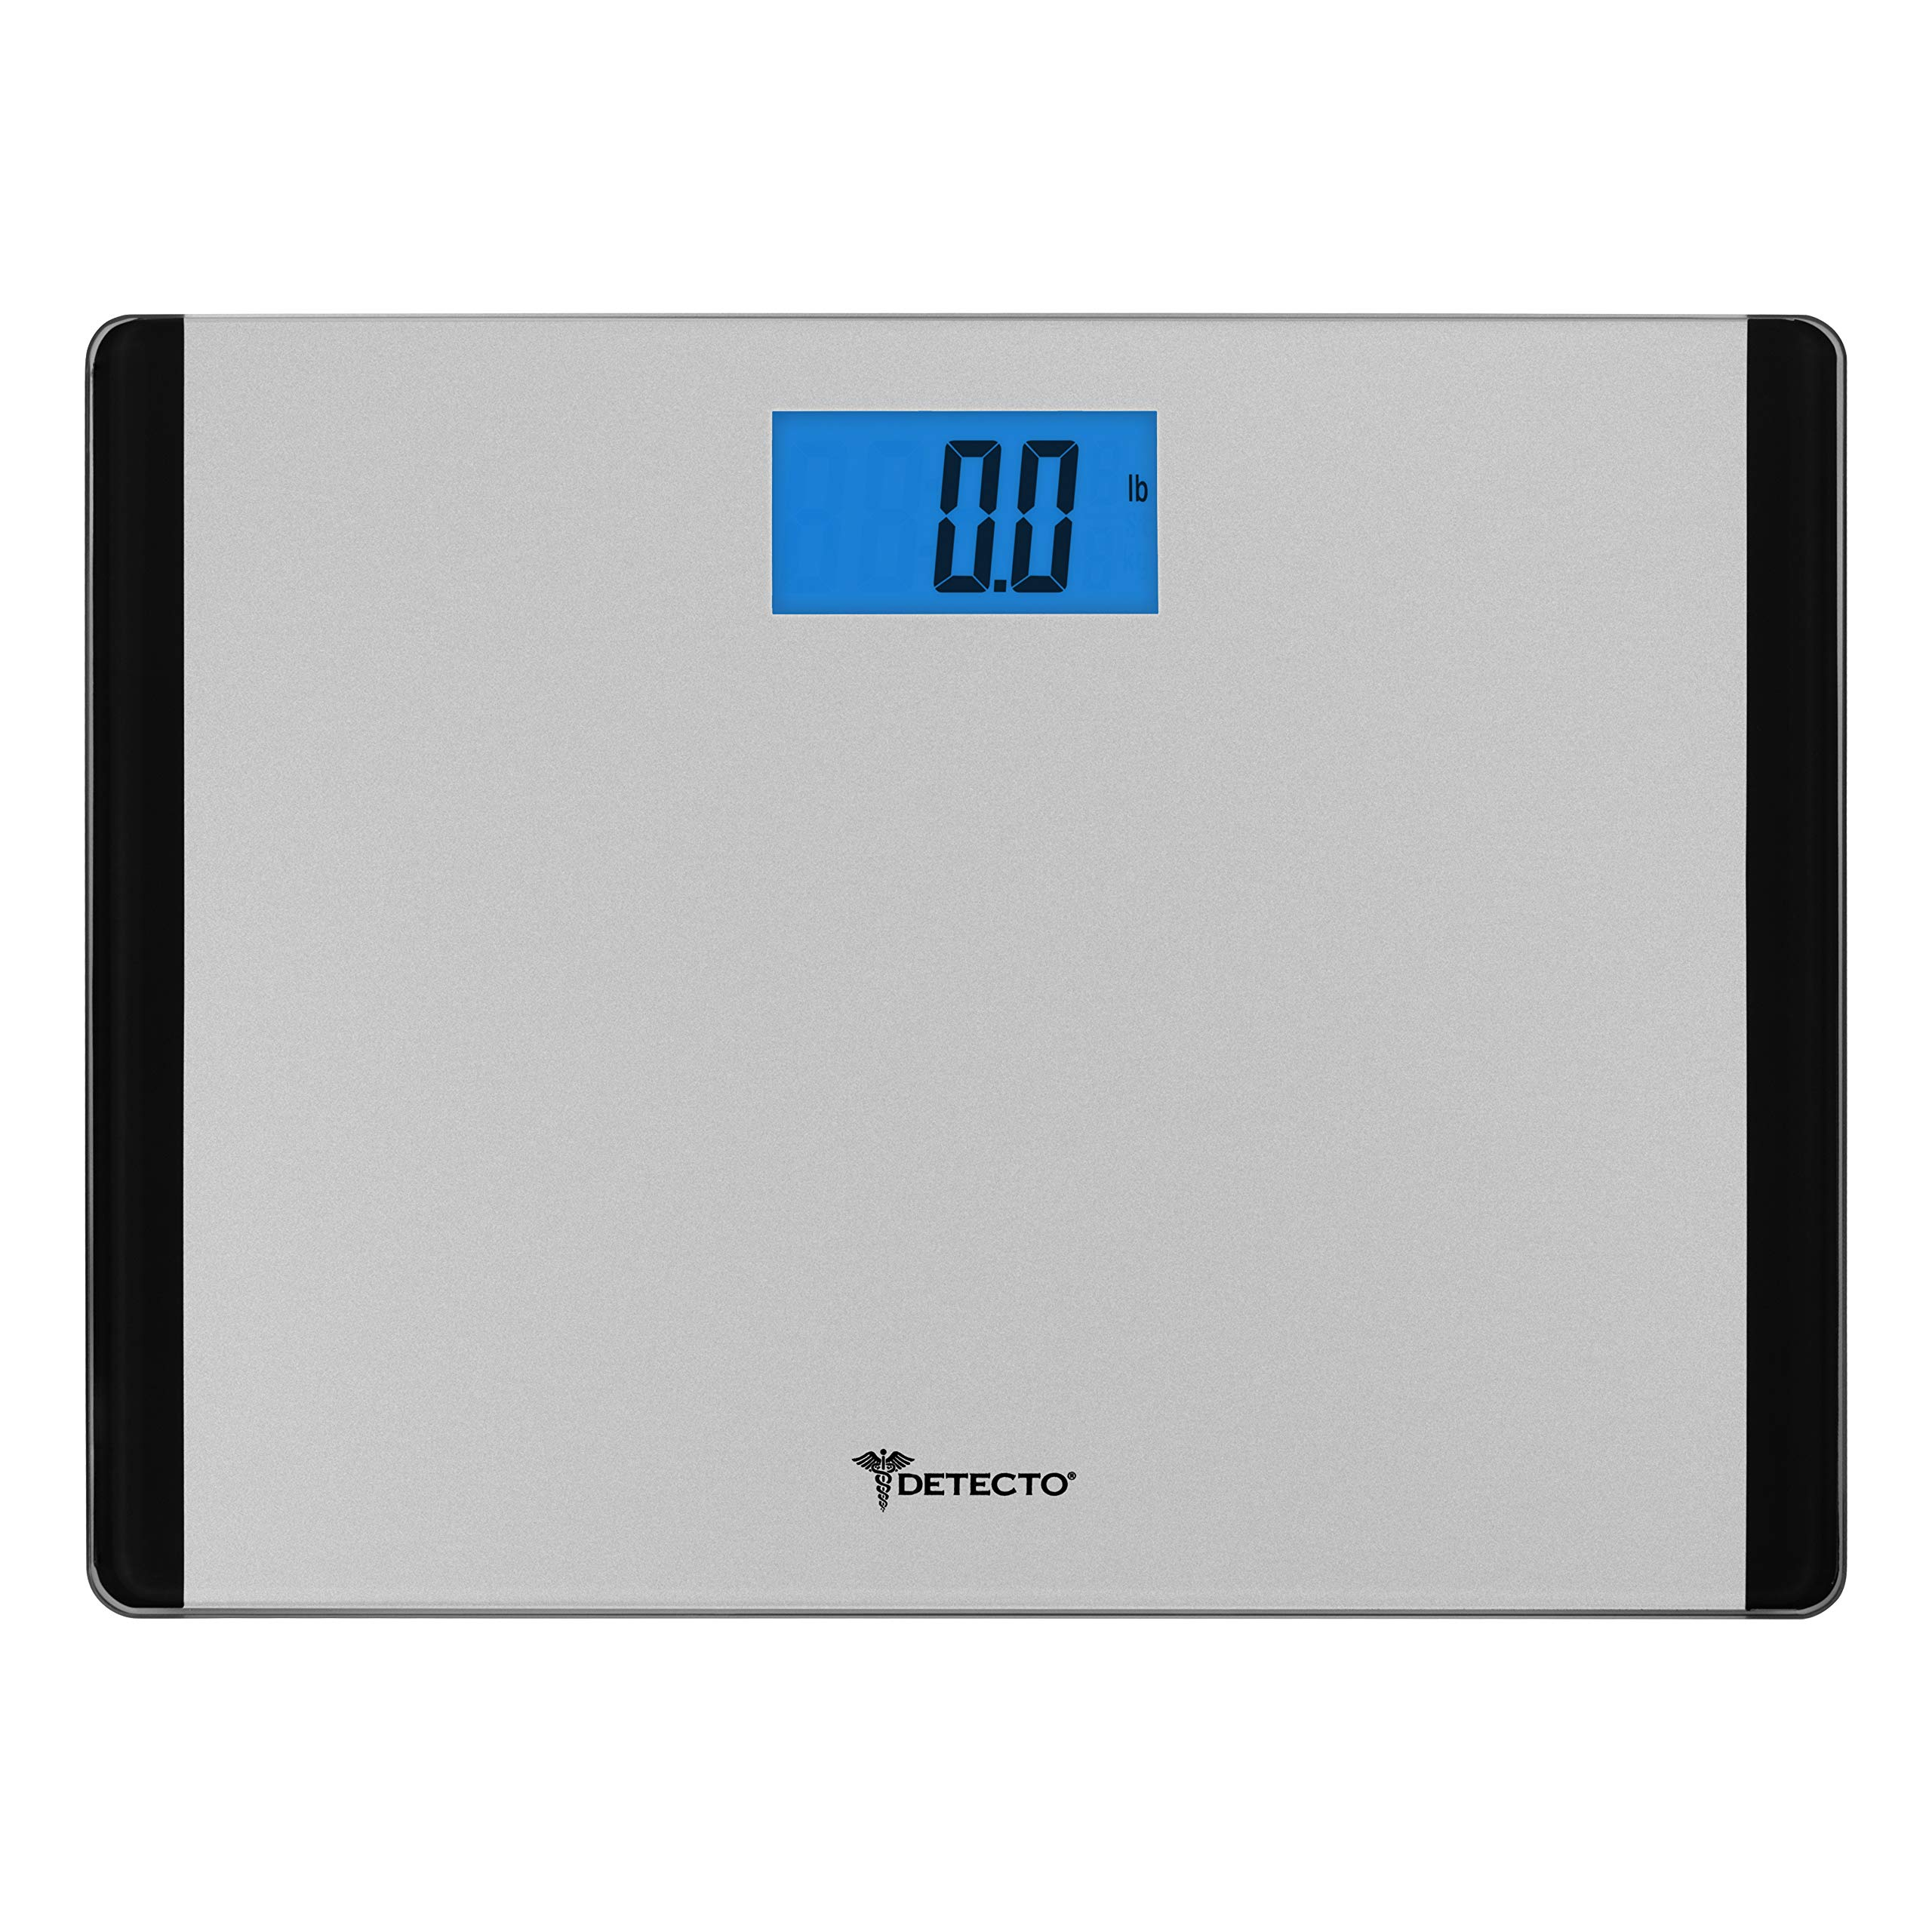 Detecto Stainless Steel Scale Display